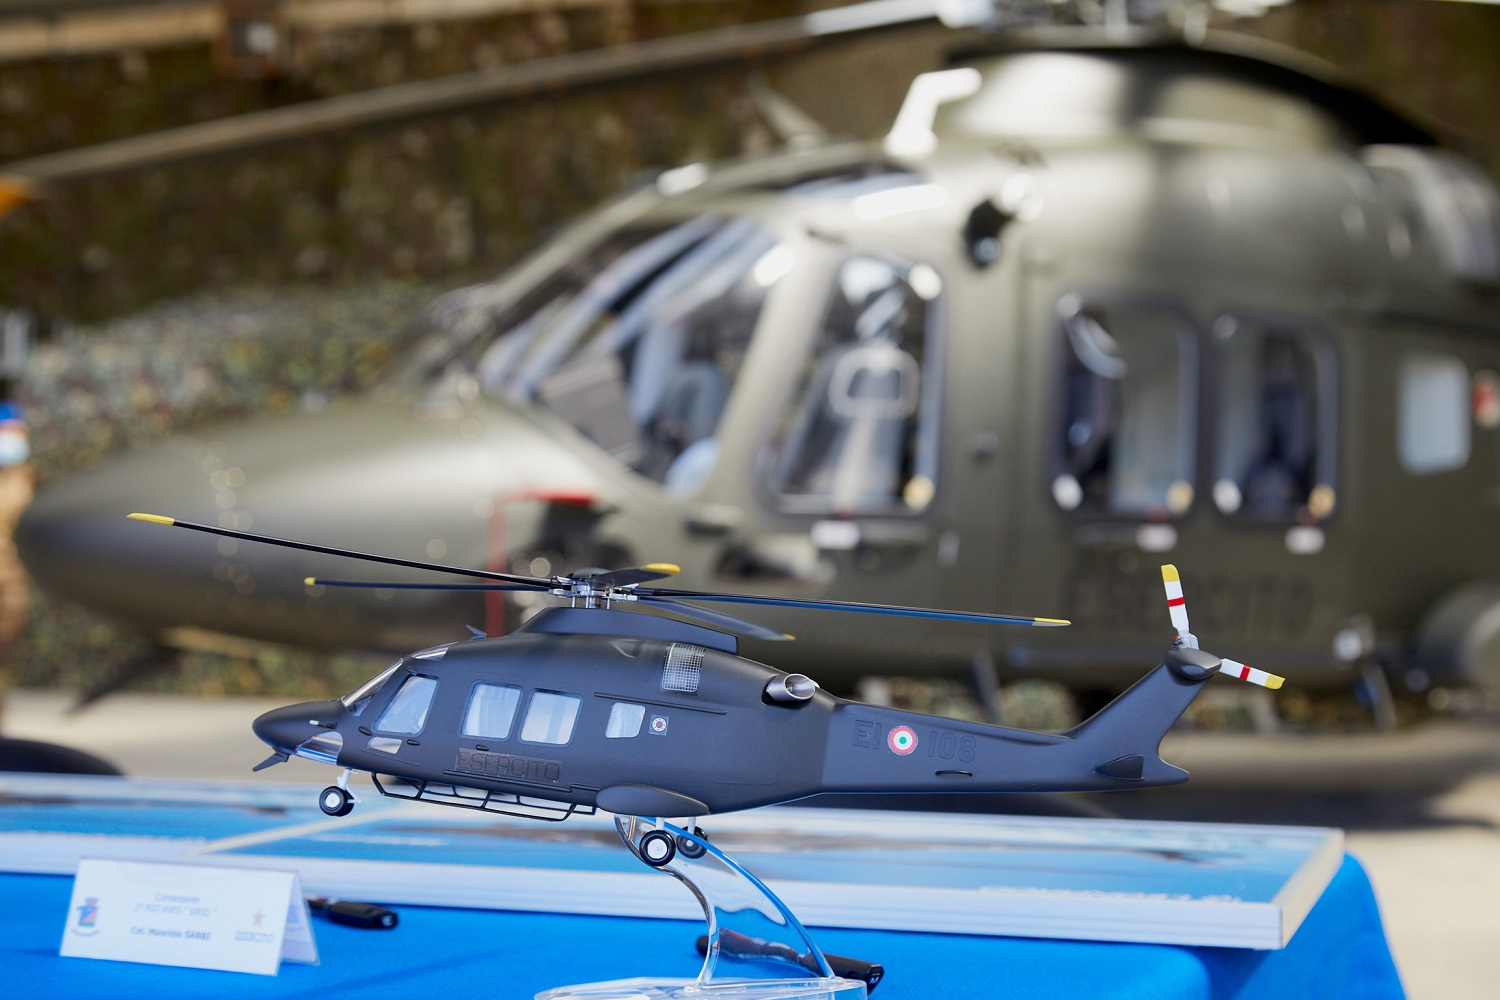 Italian Army AW169 Basic Training Helicopter